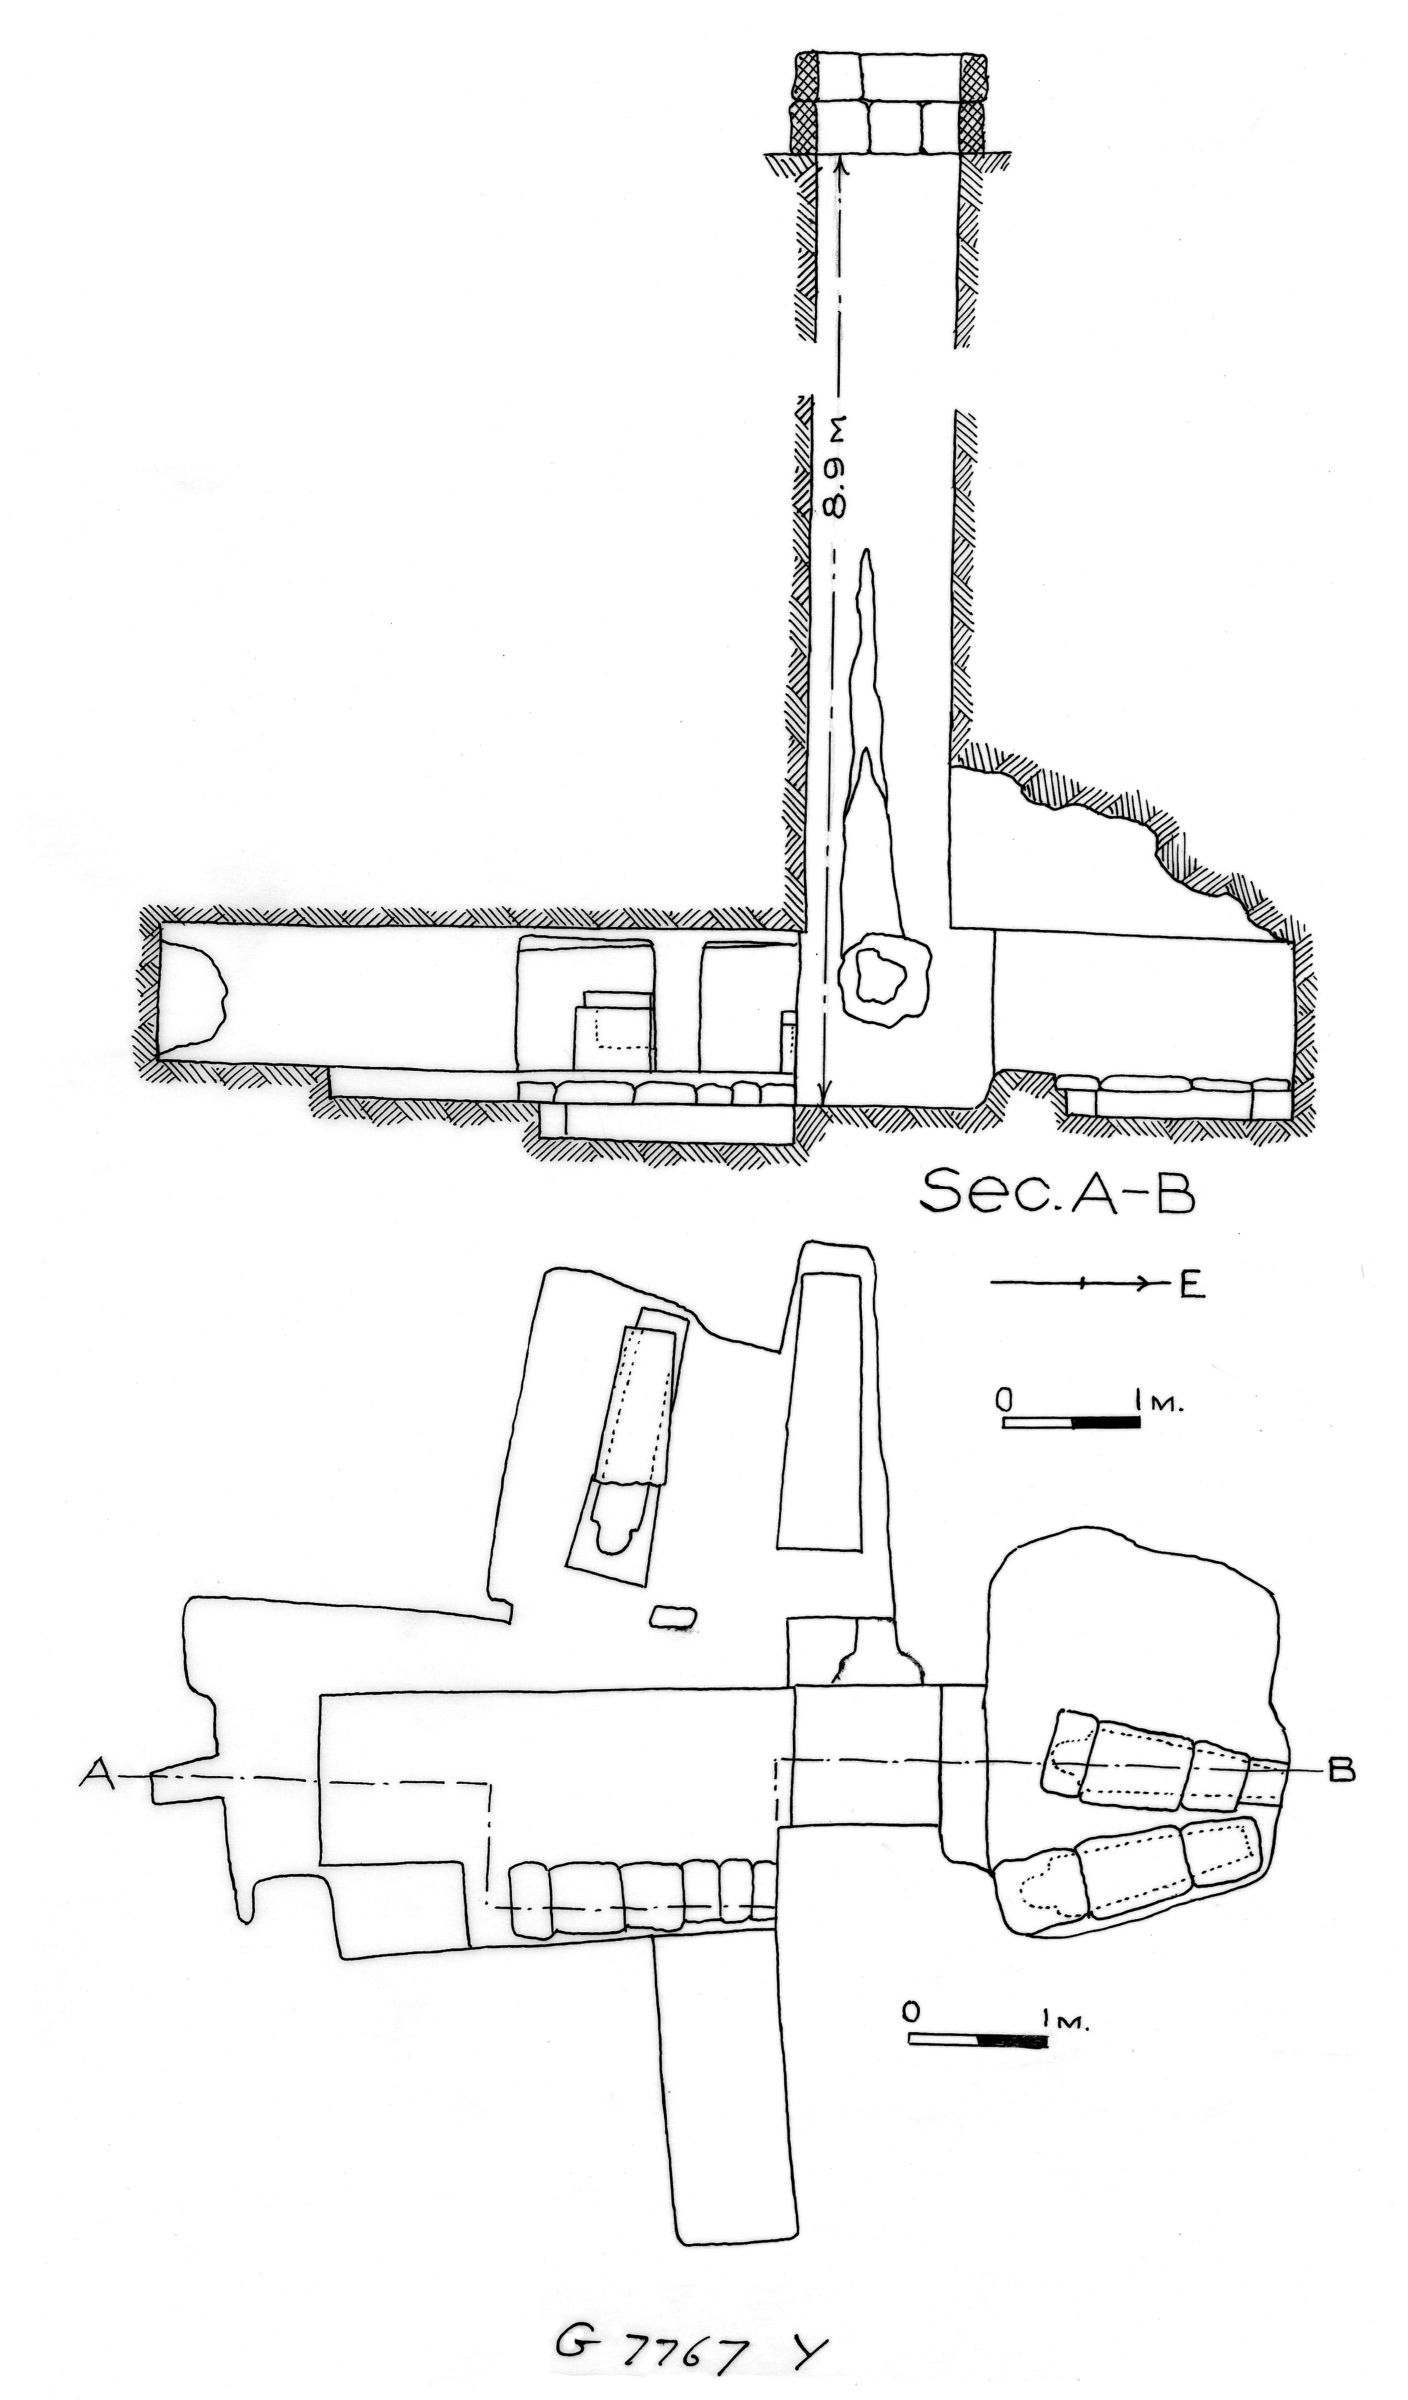 Maps and plans: G 7767, Shaft Y